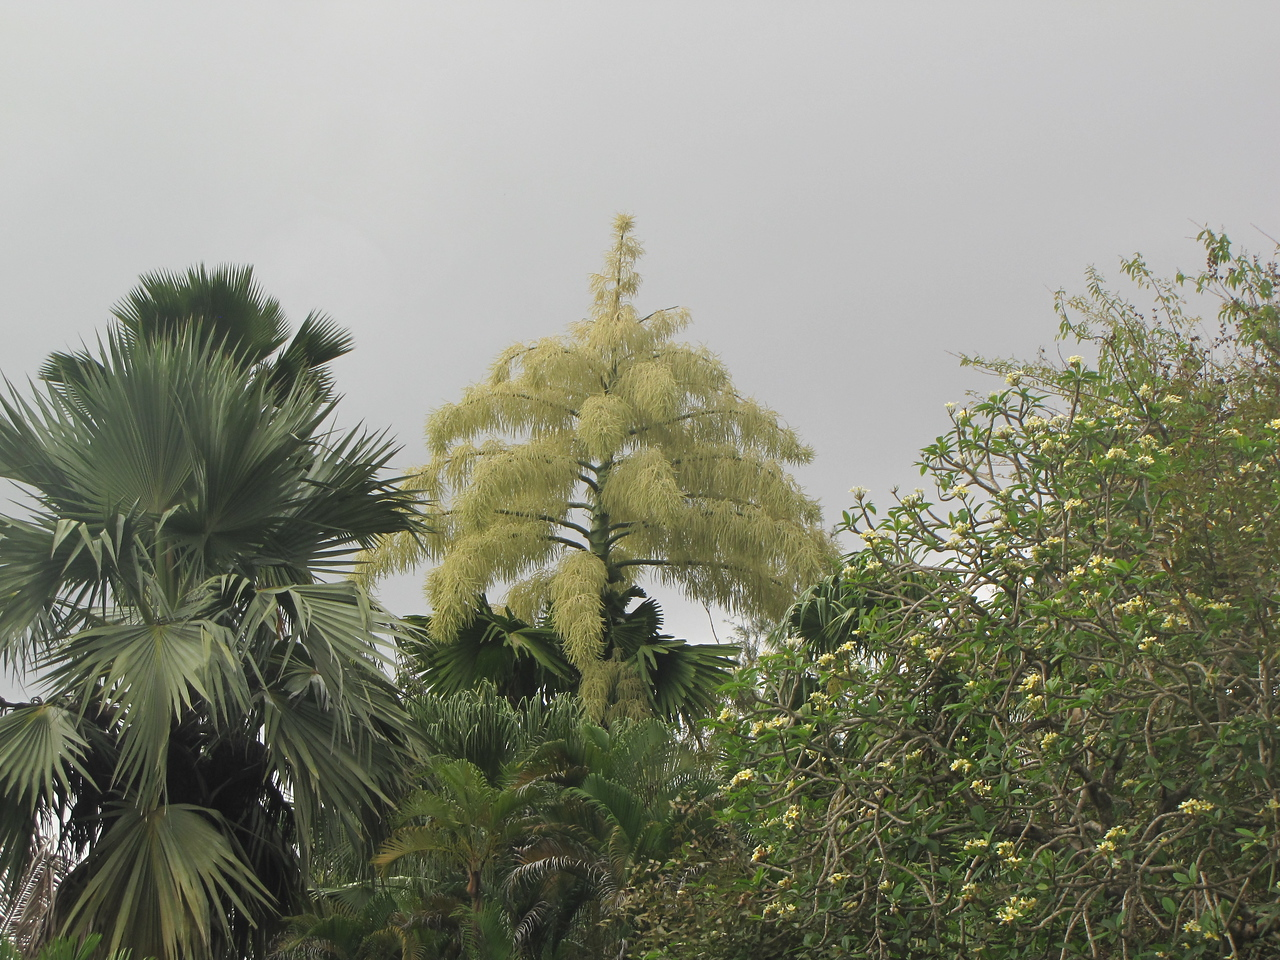 We were very fortunate to be able to see the Garden's huge Talipot Palm in bloom.  They bloom only once in their life - typically when they are 50 to 60 years old.